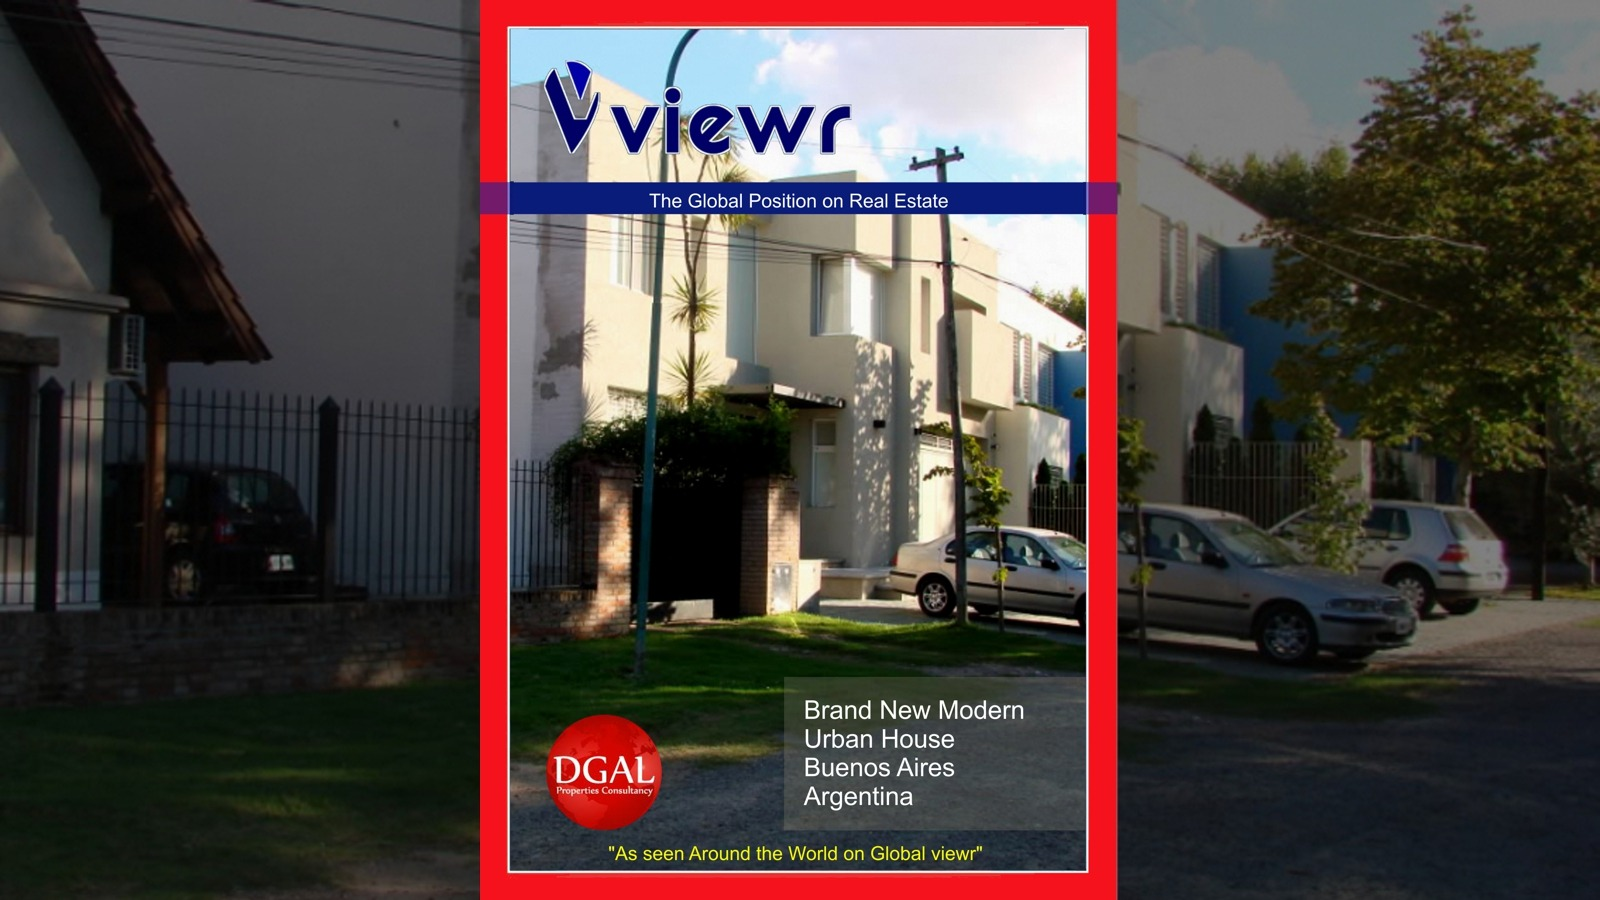 Global viewr Magazine Buenos Aires Argentina House DGAL